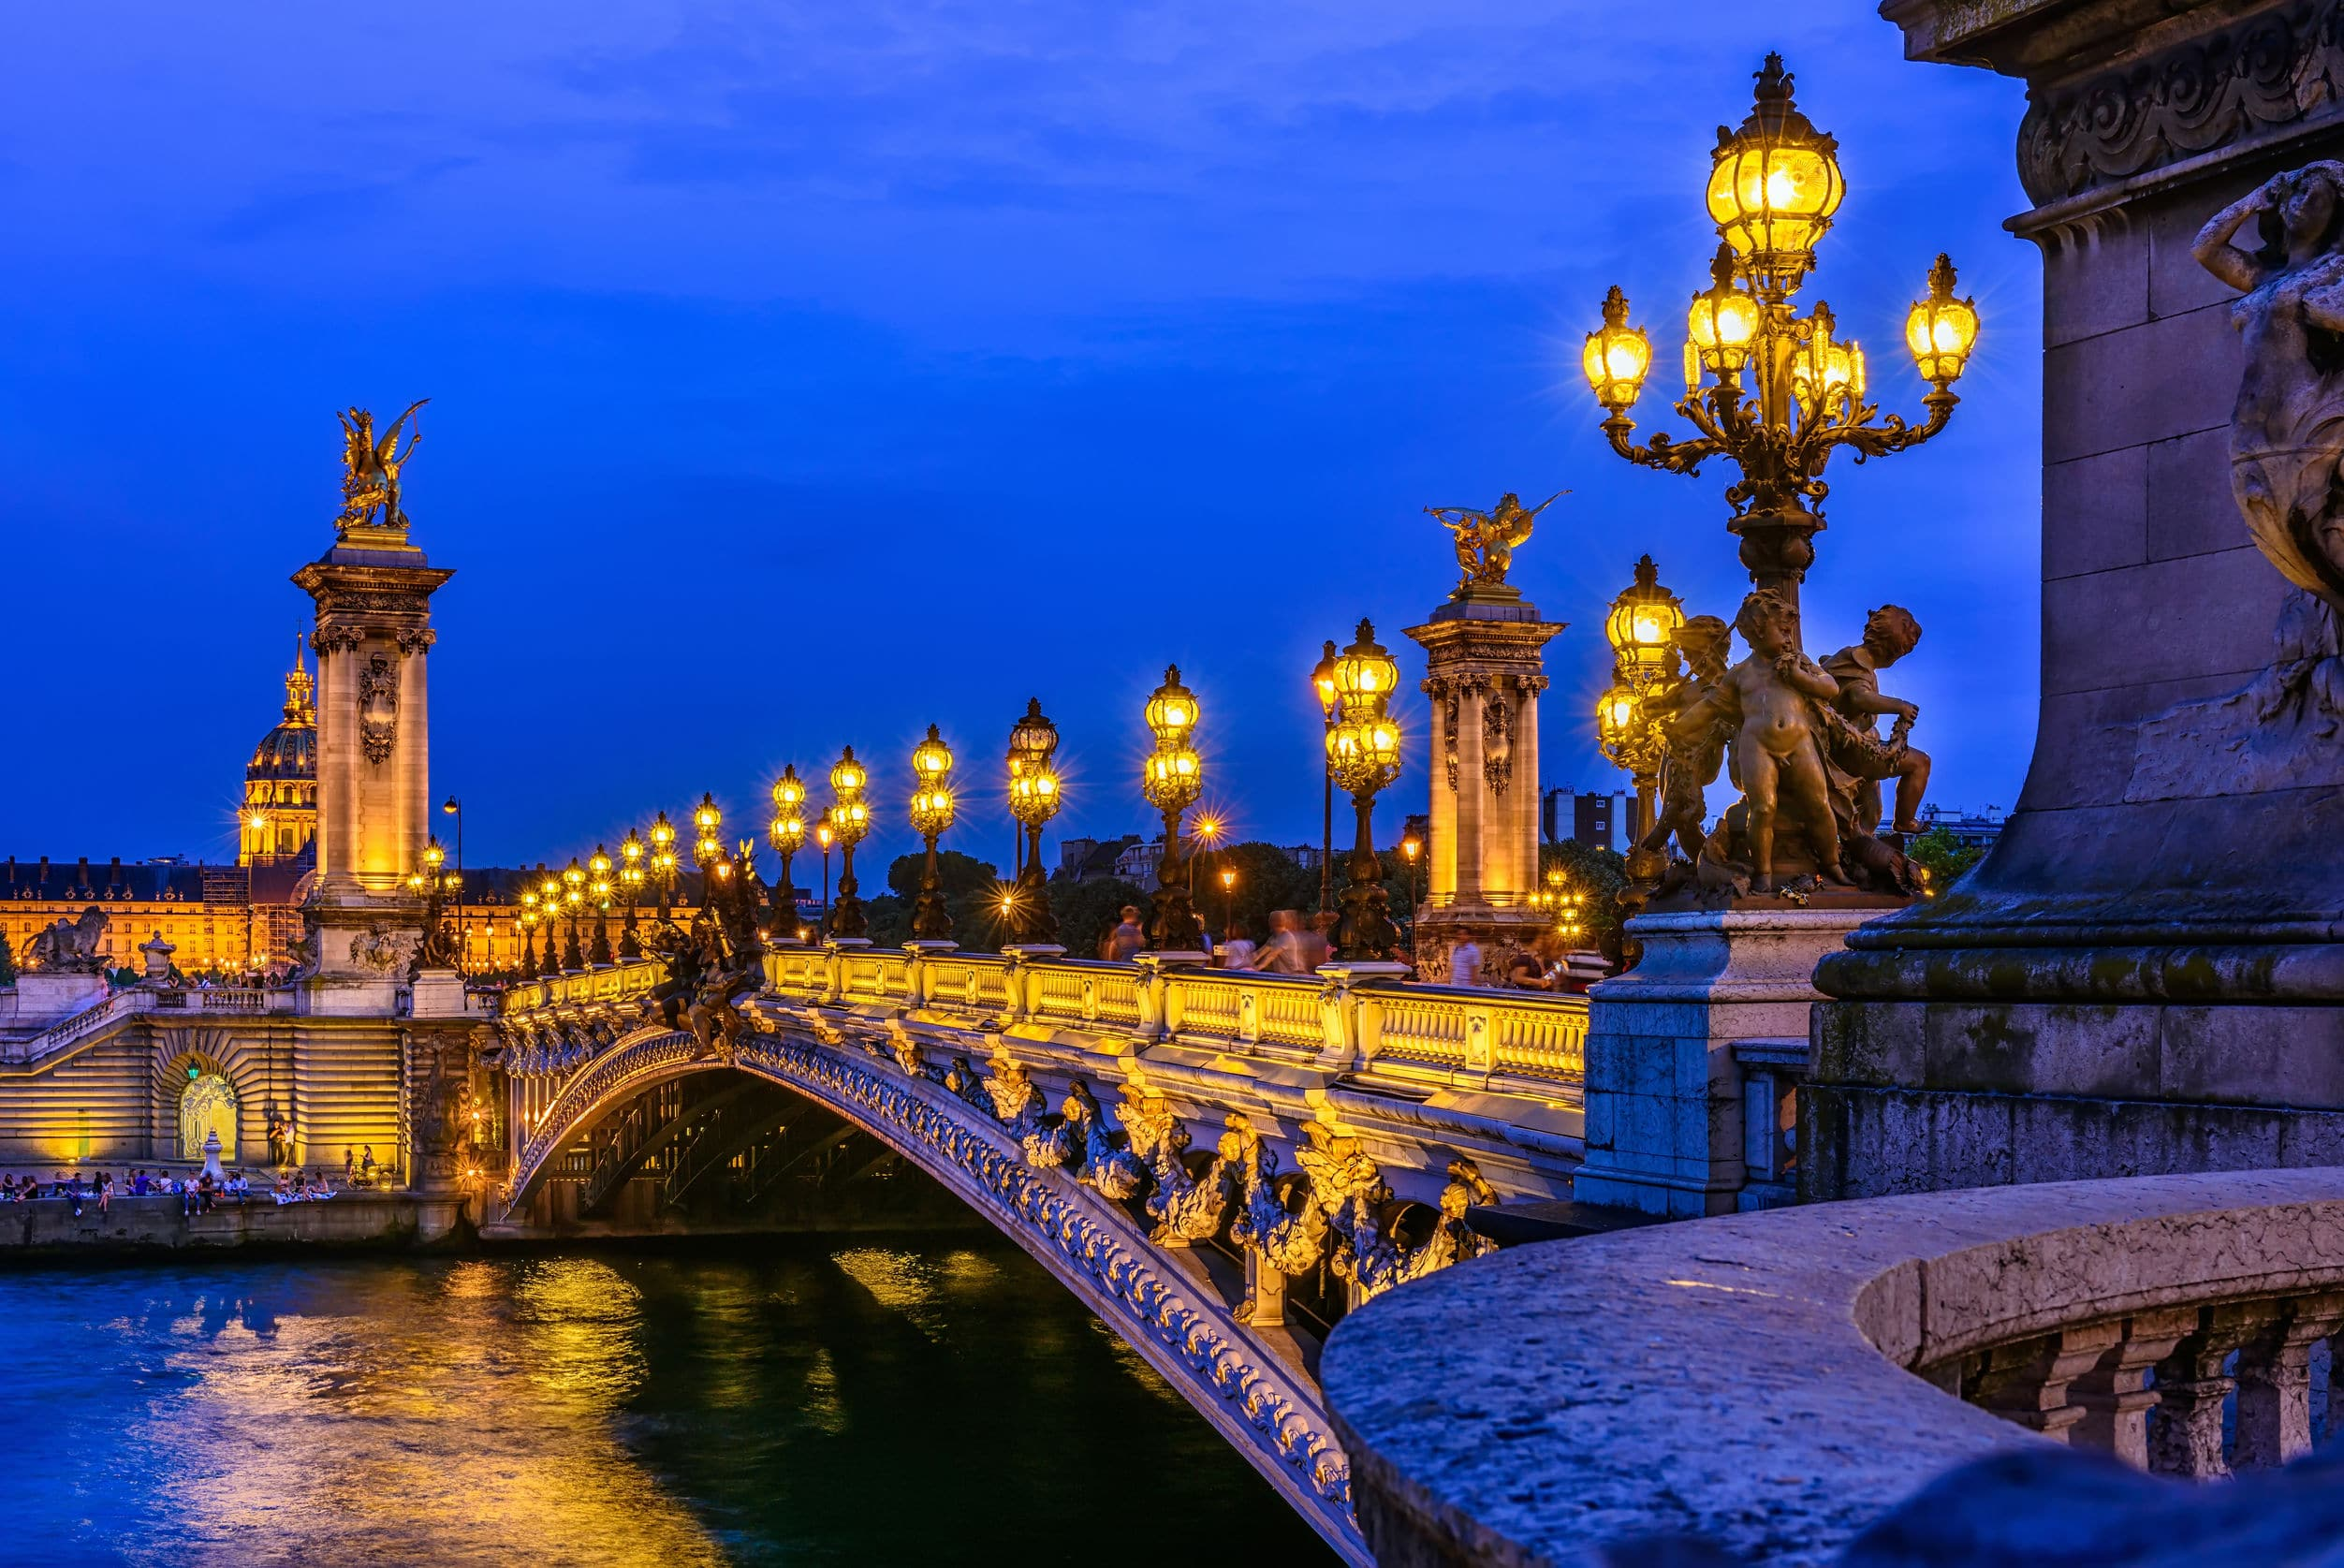 Alexander Bridge Seine Paris